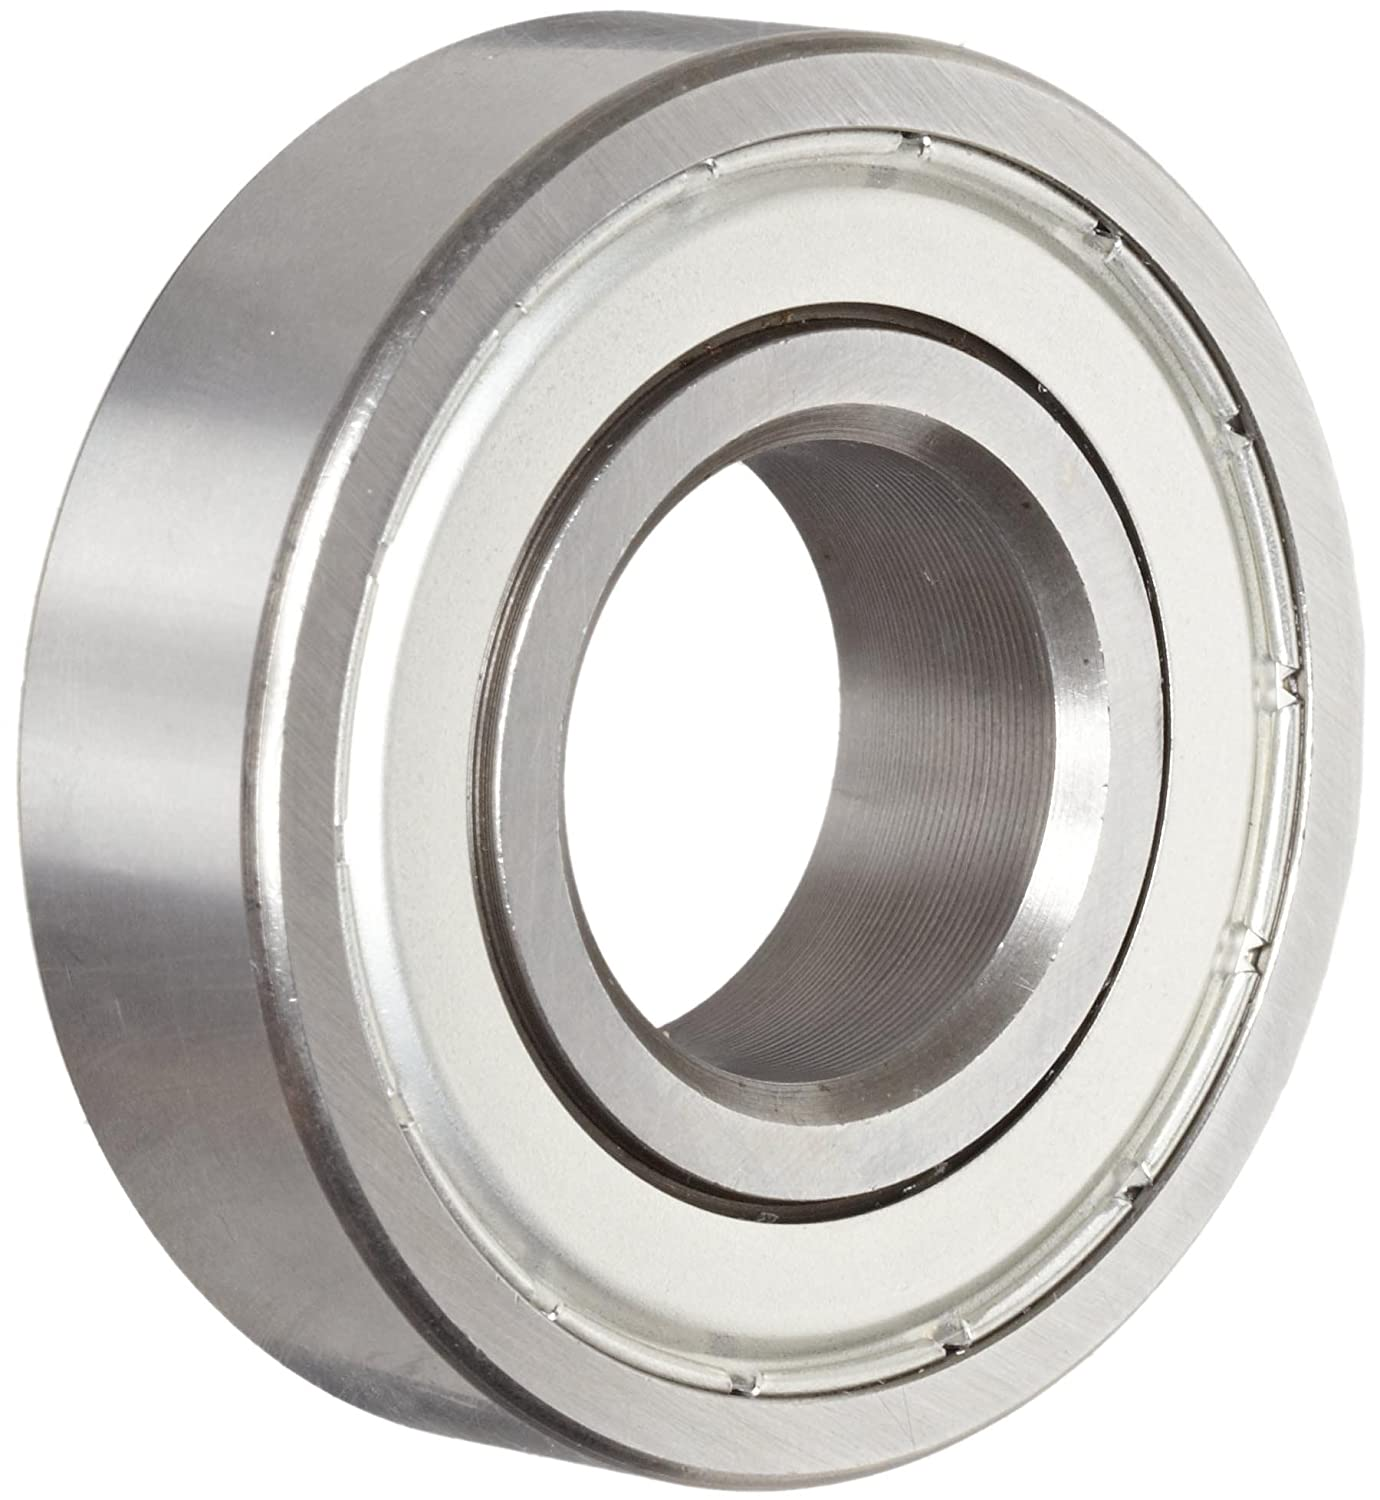 52100 Bearing Quality Steel Nice Ball Bearing 3040DS Double Shielded 0.8750 Bore x 2.0000 OD x 0.5625 Width 0.8750 Bore x 2.0000 OD x 0.5625 Width RBC Bearings